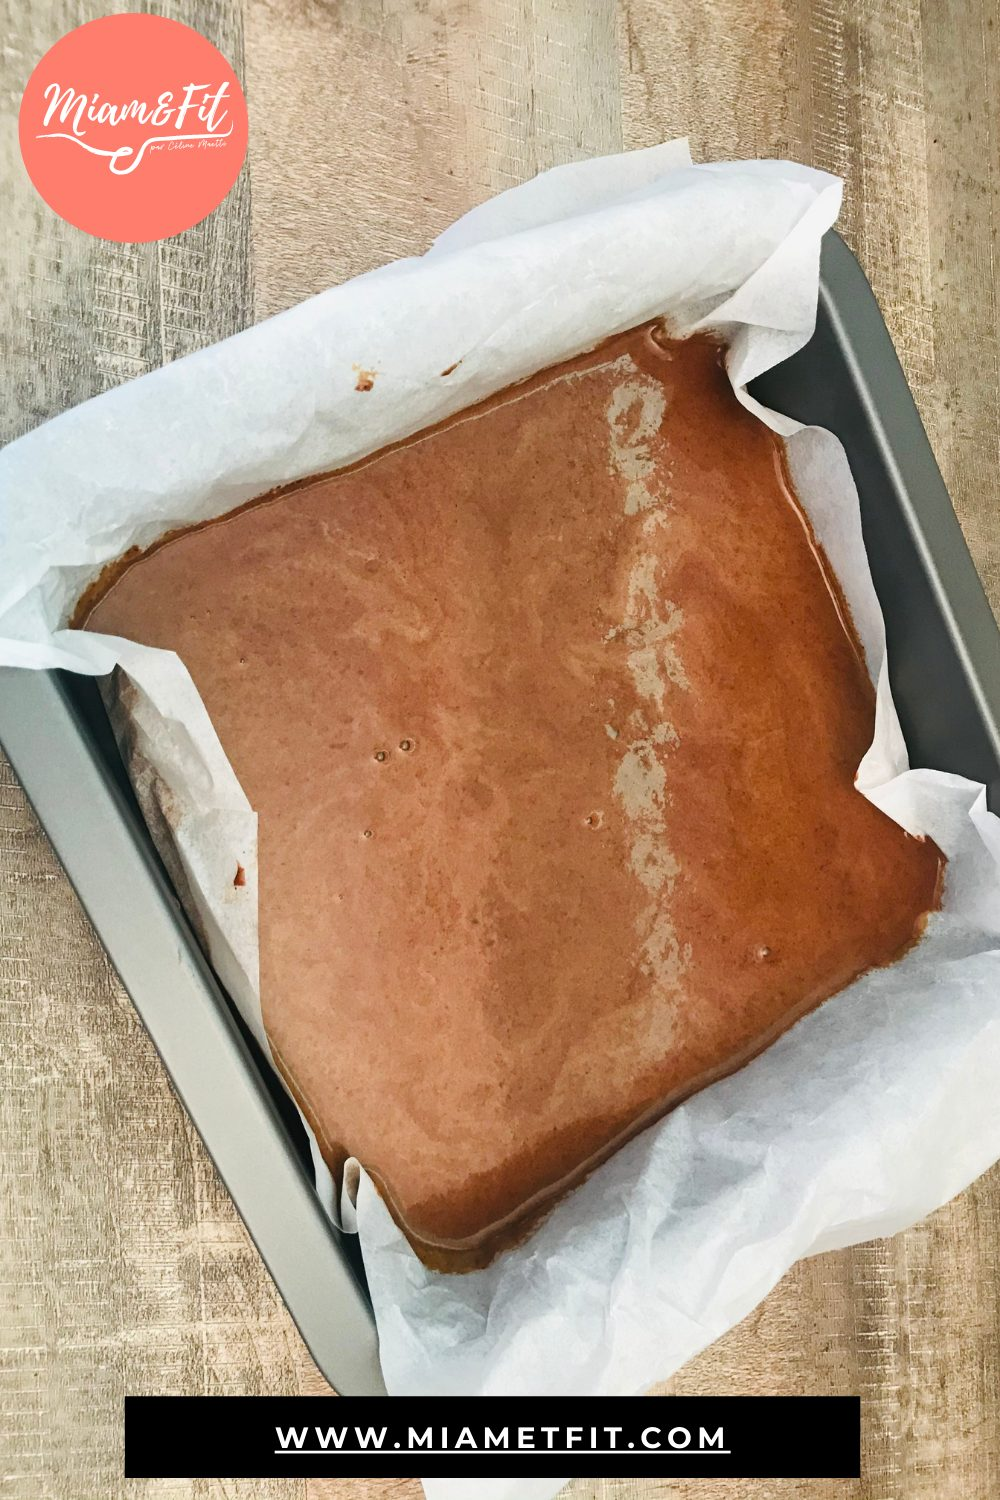 Miam&Fit_Brownies-Ceto-Keto-4